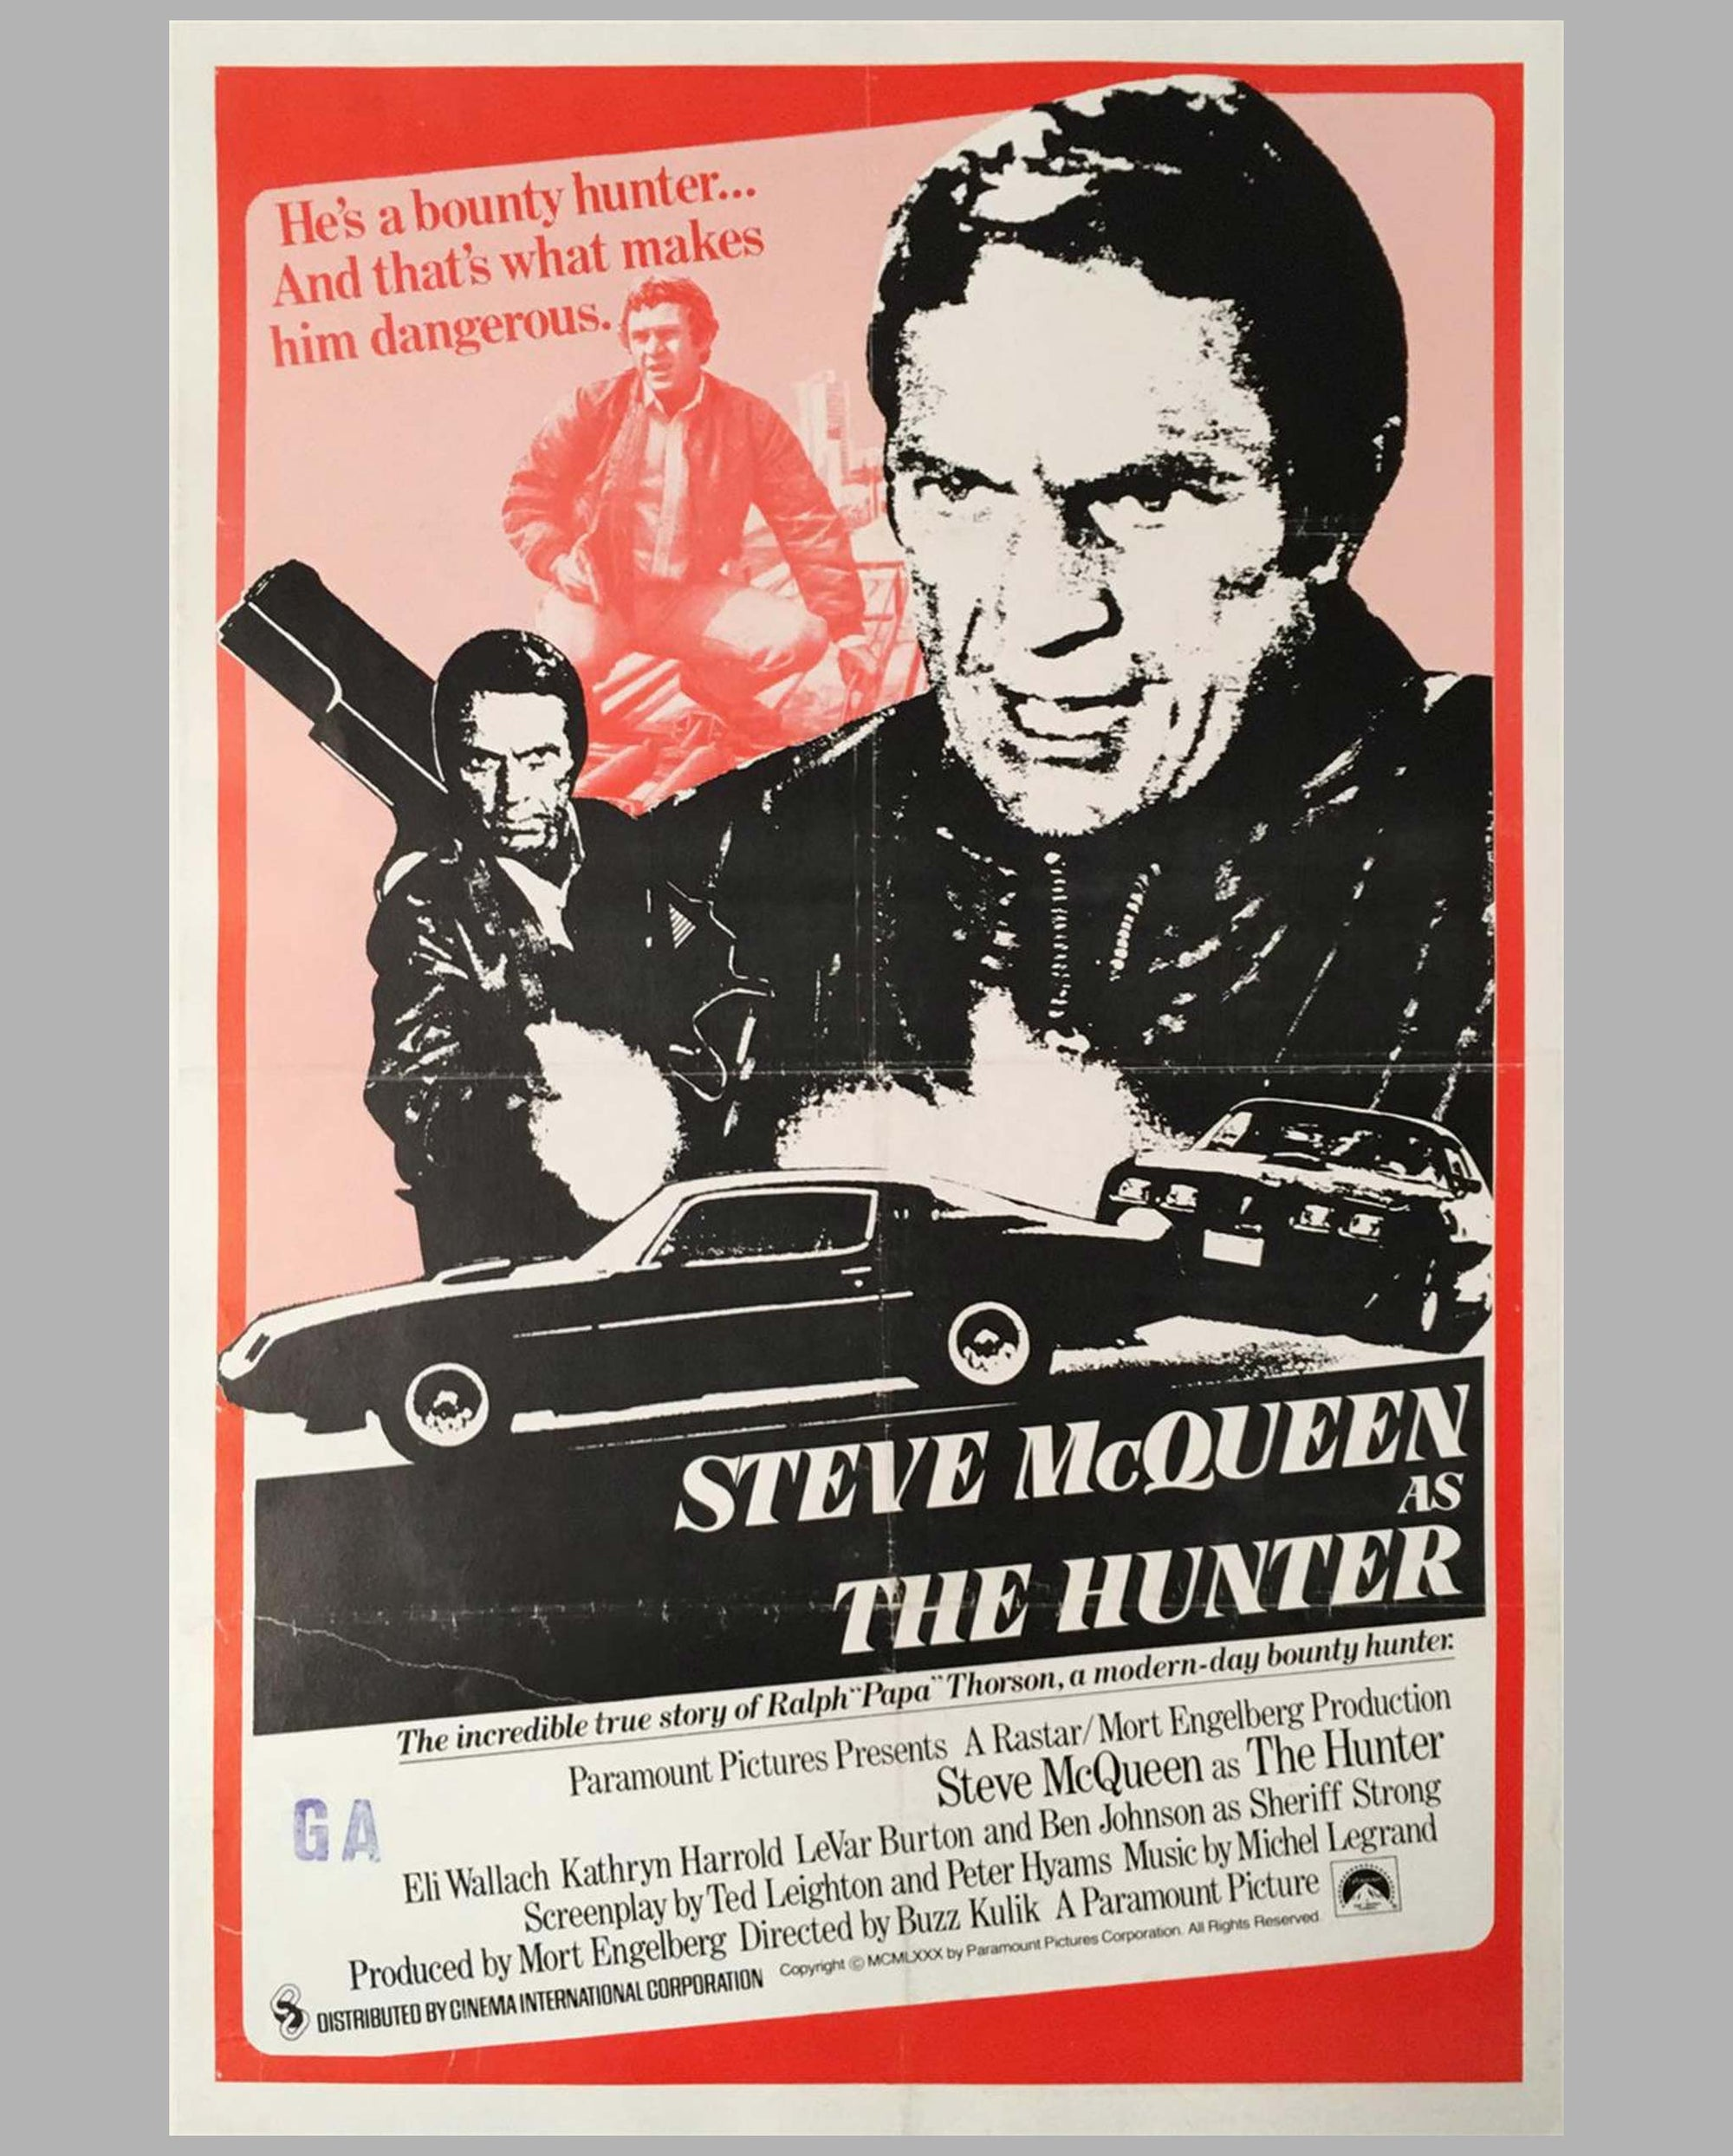 1980 The Hunter with Steve McQueen movie poster